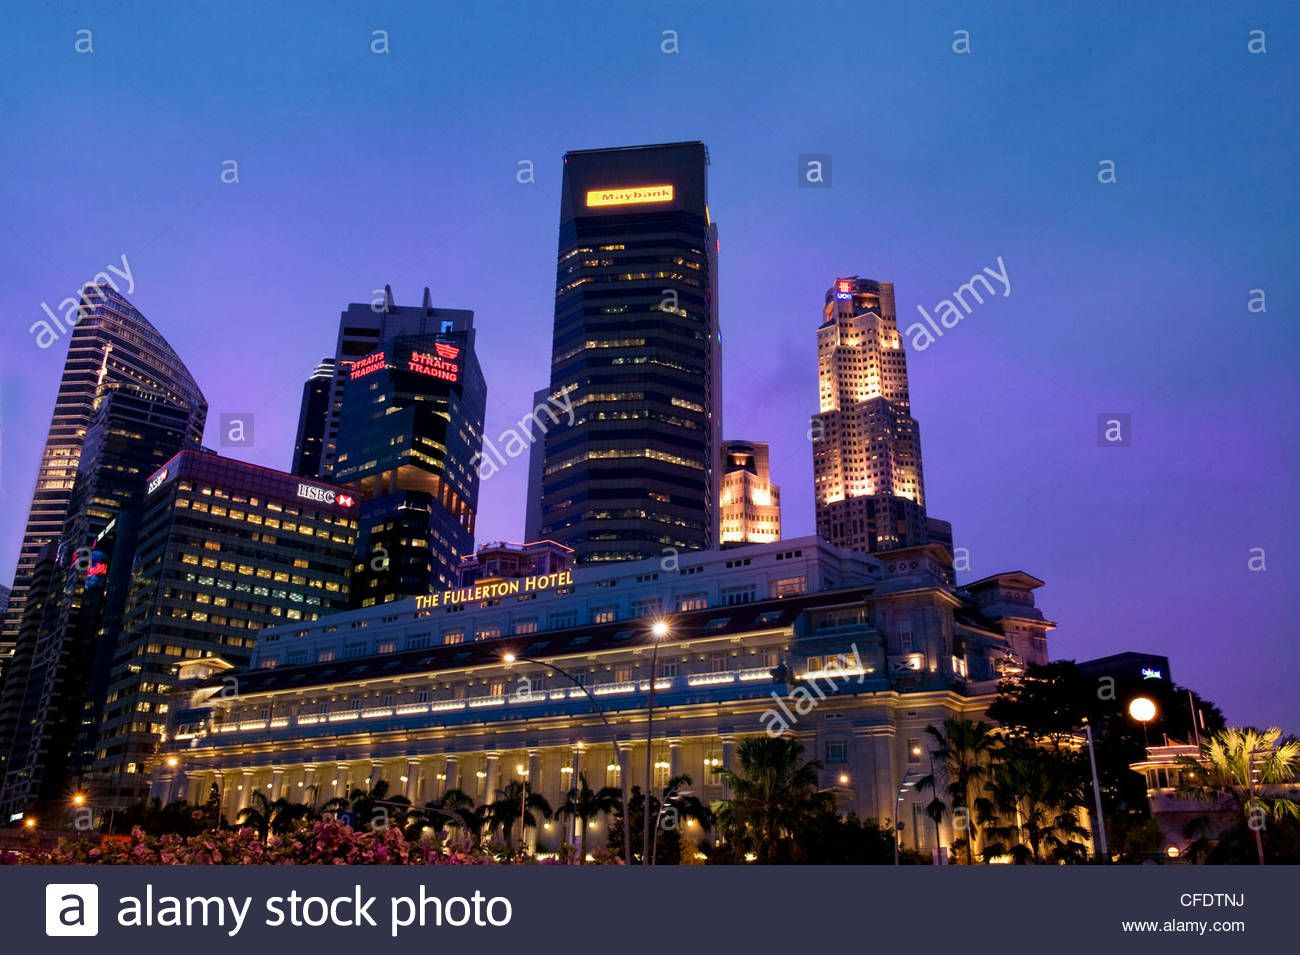 Https Www Alamy Com Stock Photo Skyline Of The Banking District Of Singapore With Fullerton Hotel 43945374 Html Pv 1